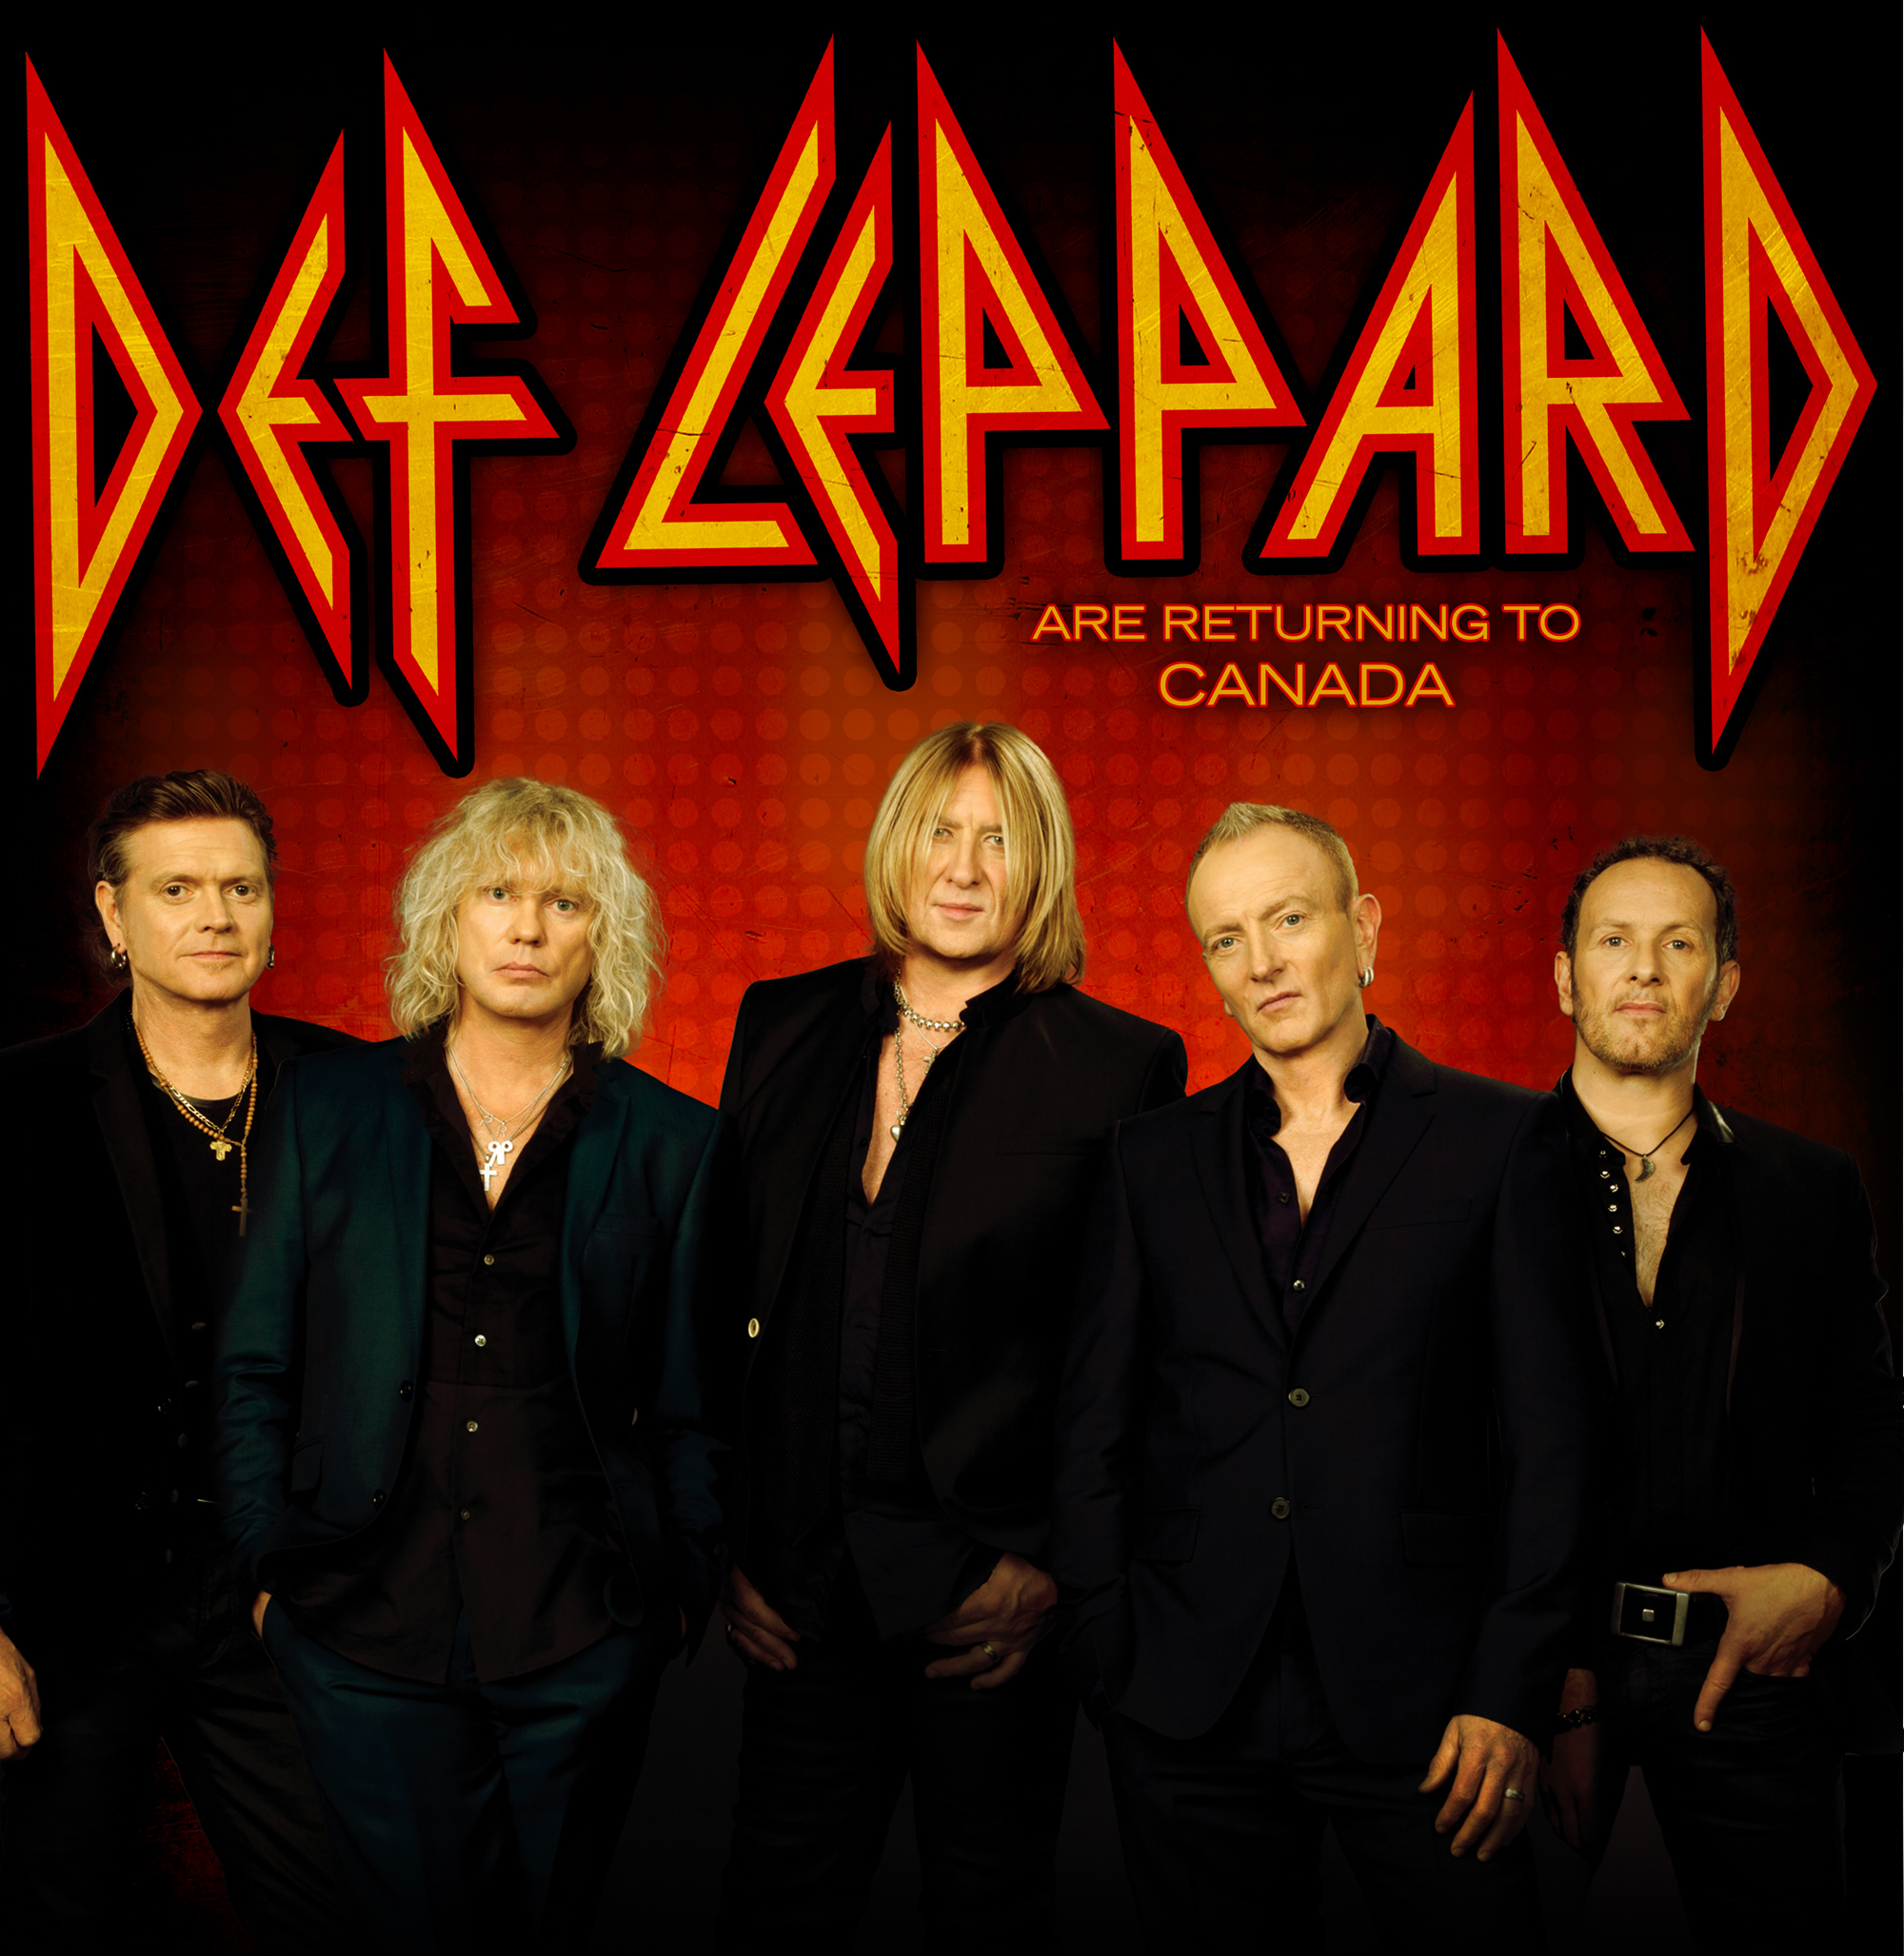 official tour photo for Def Leppard